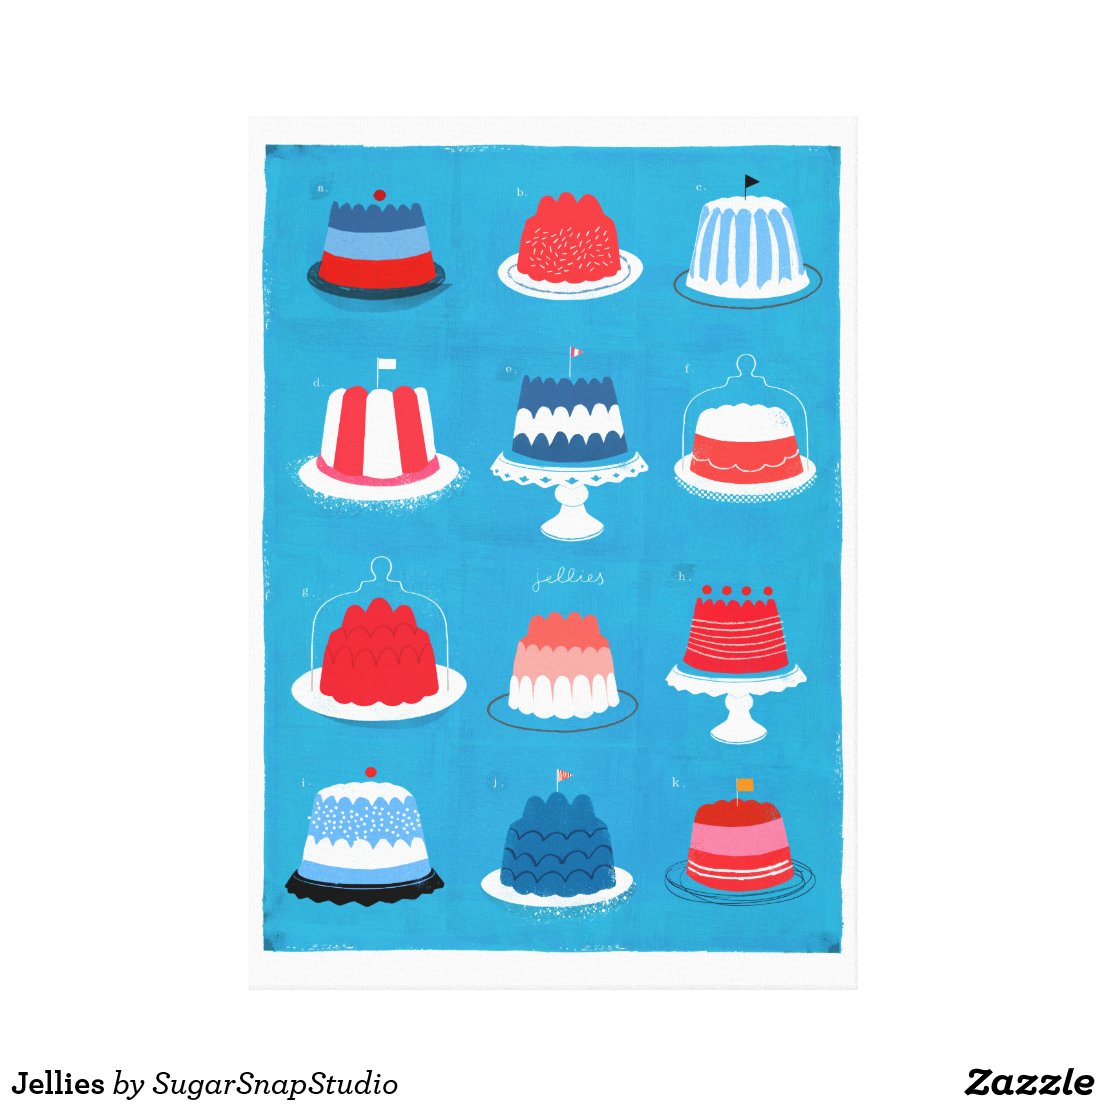 Jellies Canvas Print